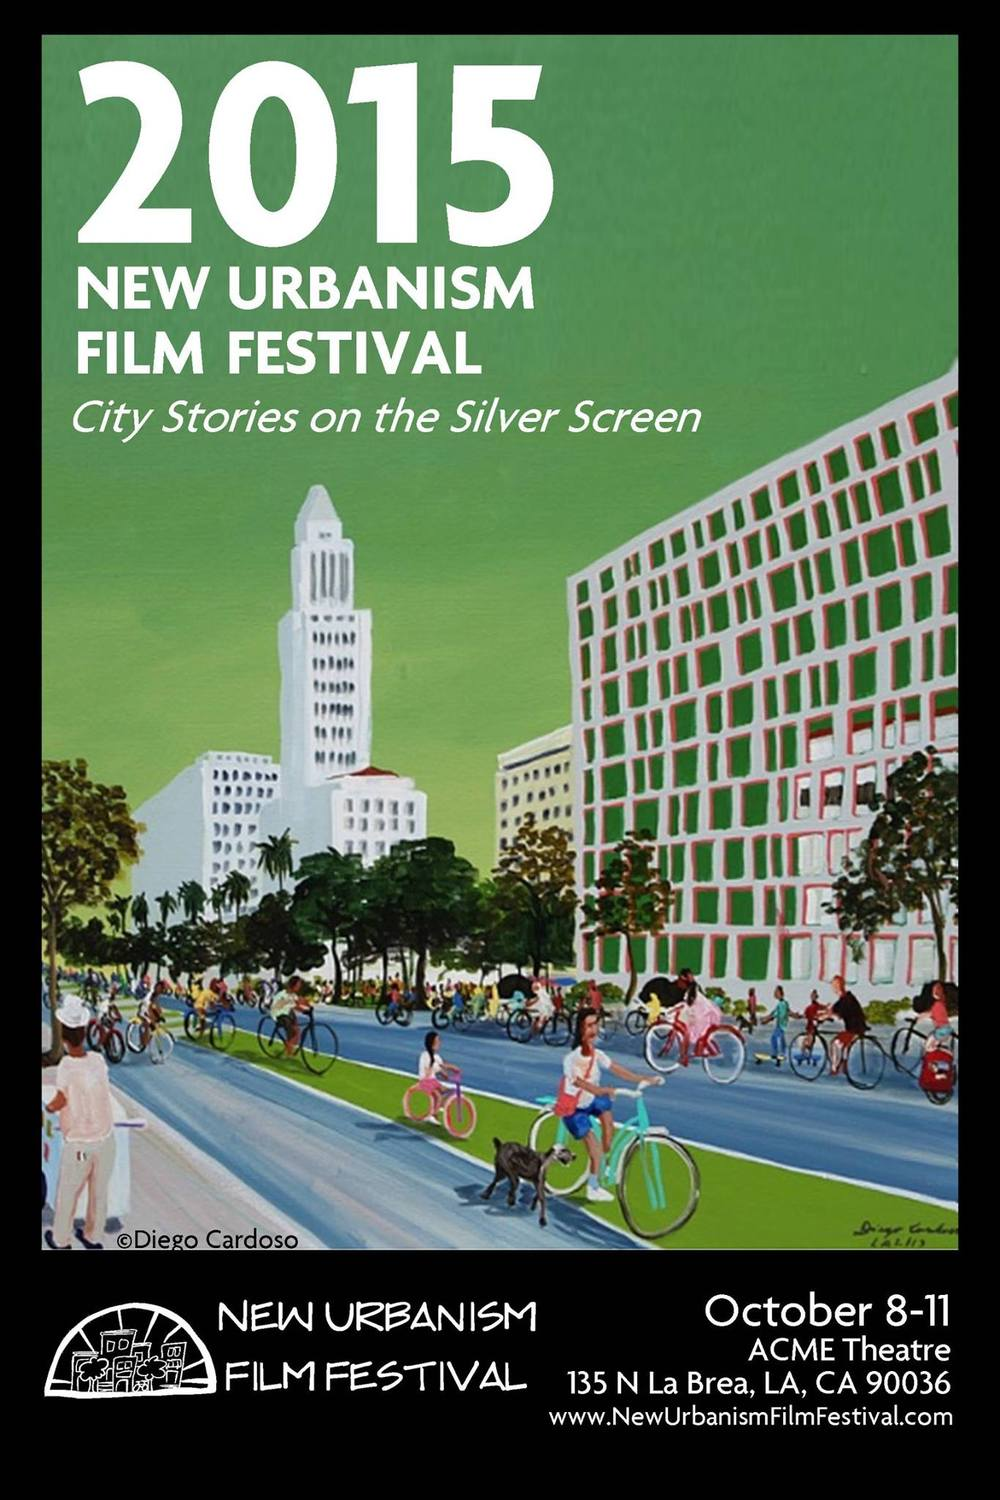 Poster for the 3rd annual New Urbanism Film Festival in Los Angeles, CA.